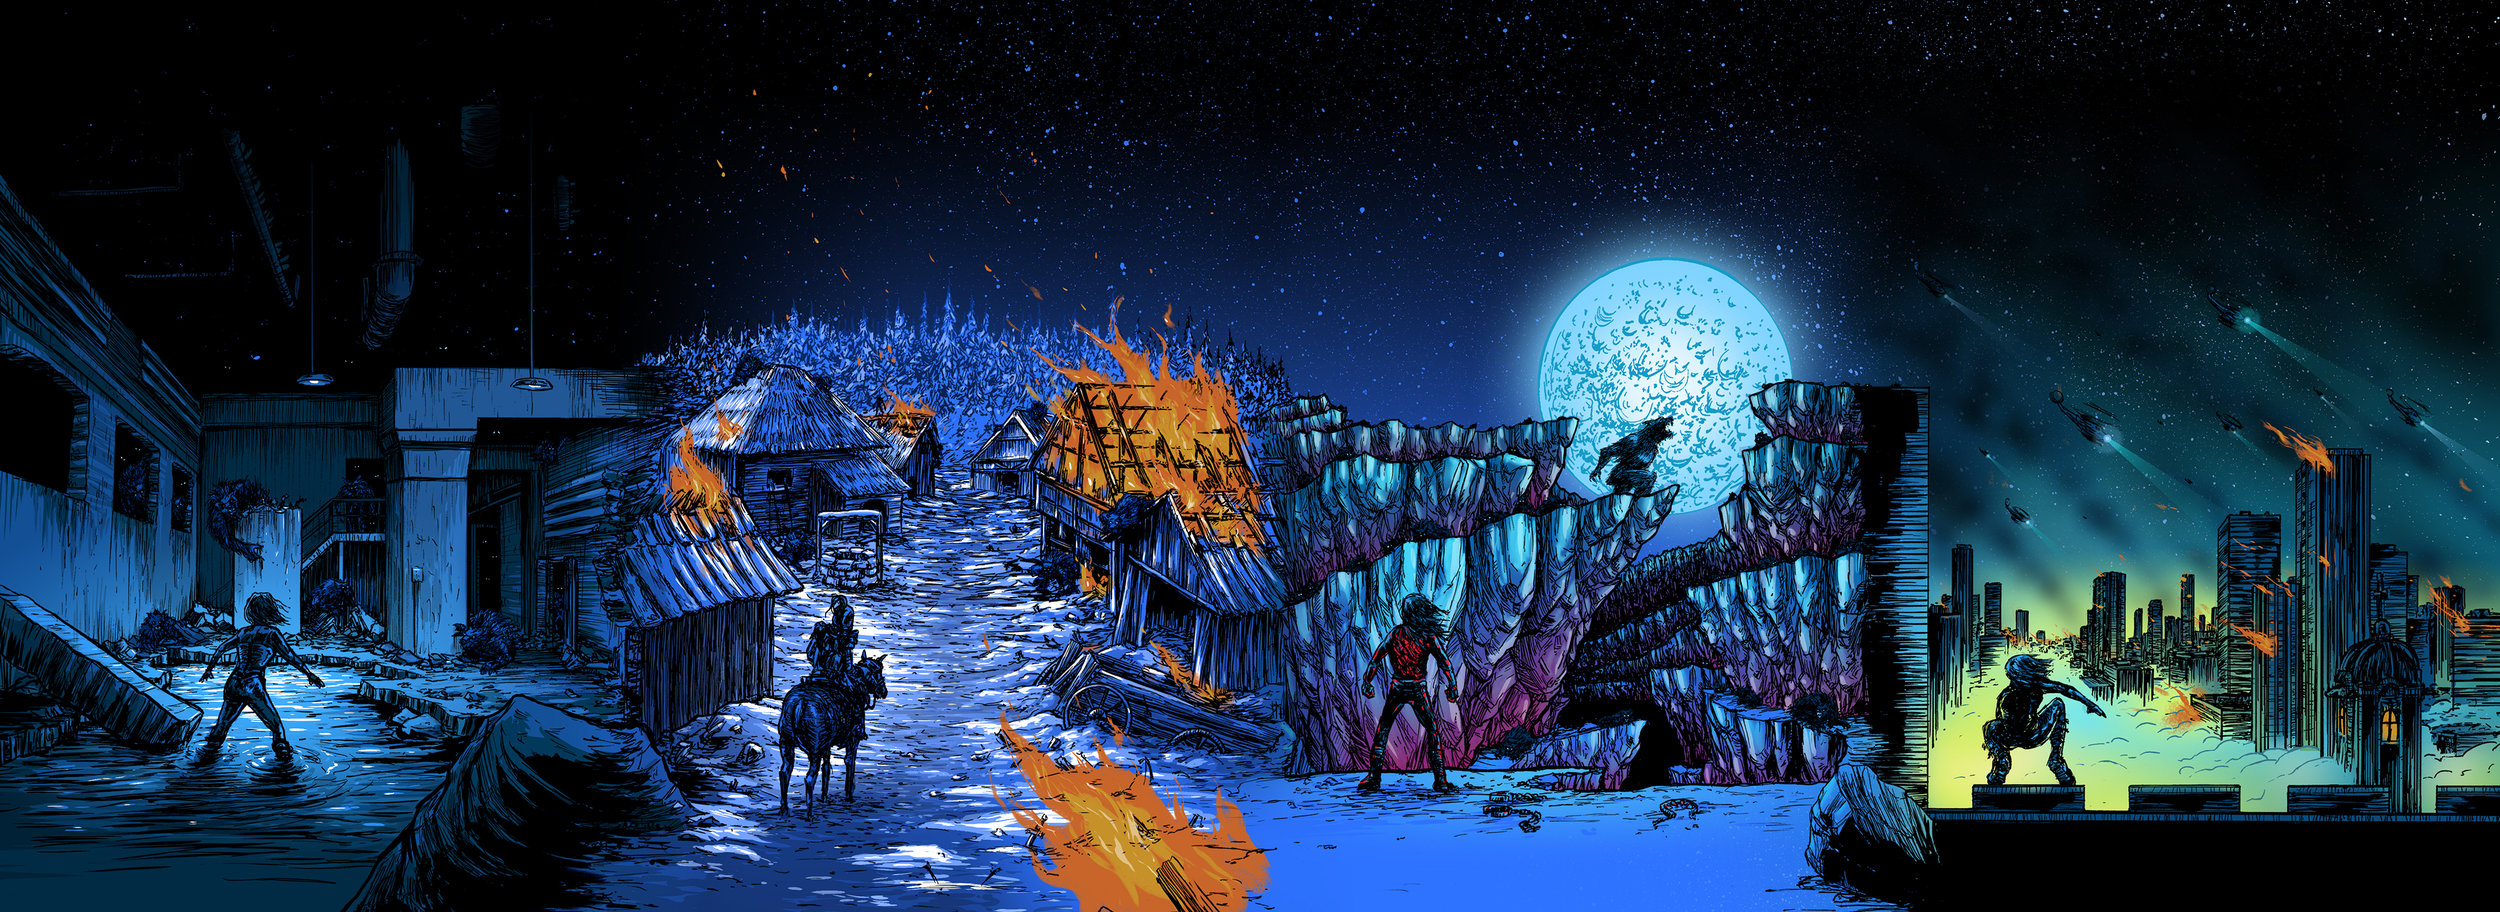 underworld_pano_full_illustration_web.jpg